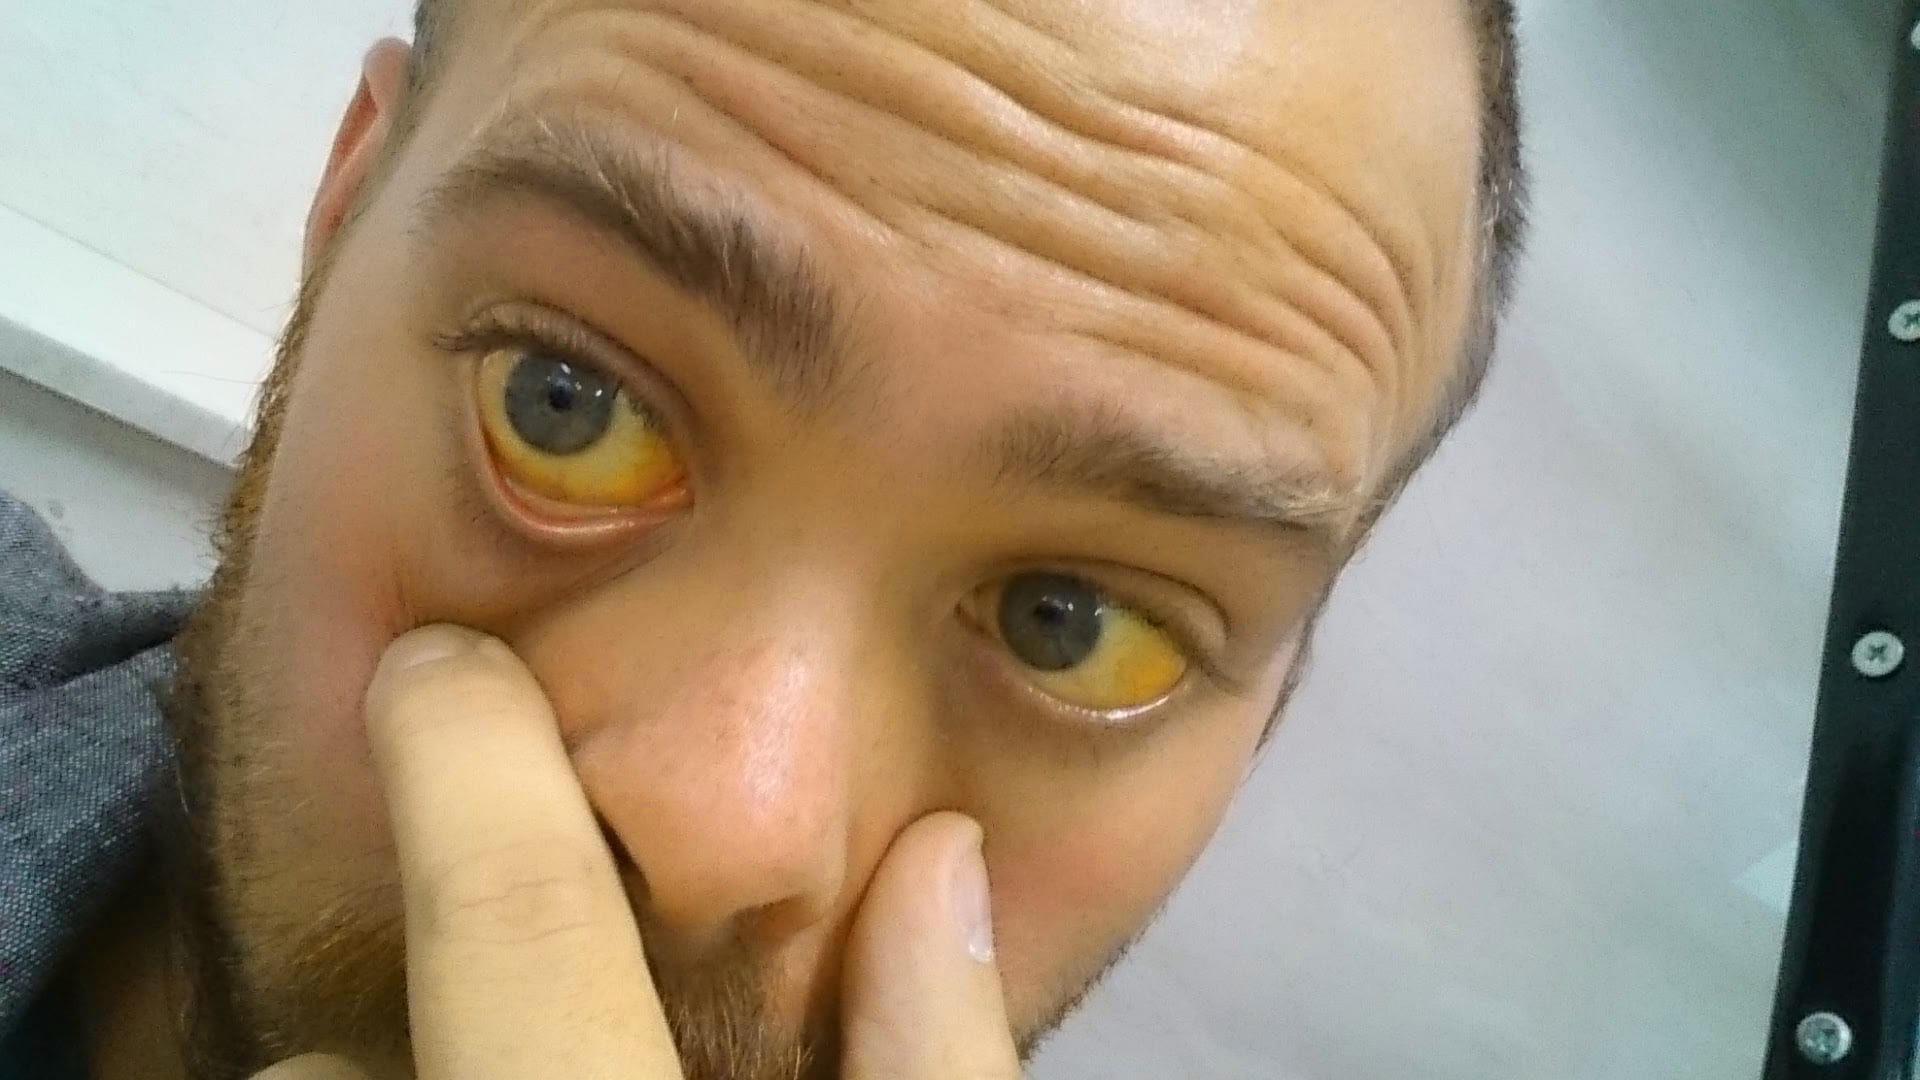 Jaundice Symptoms Causes And Other Risk Factors